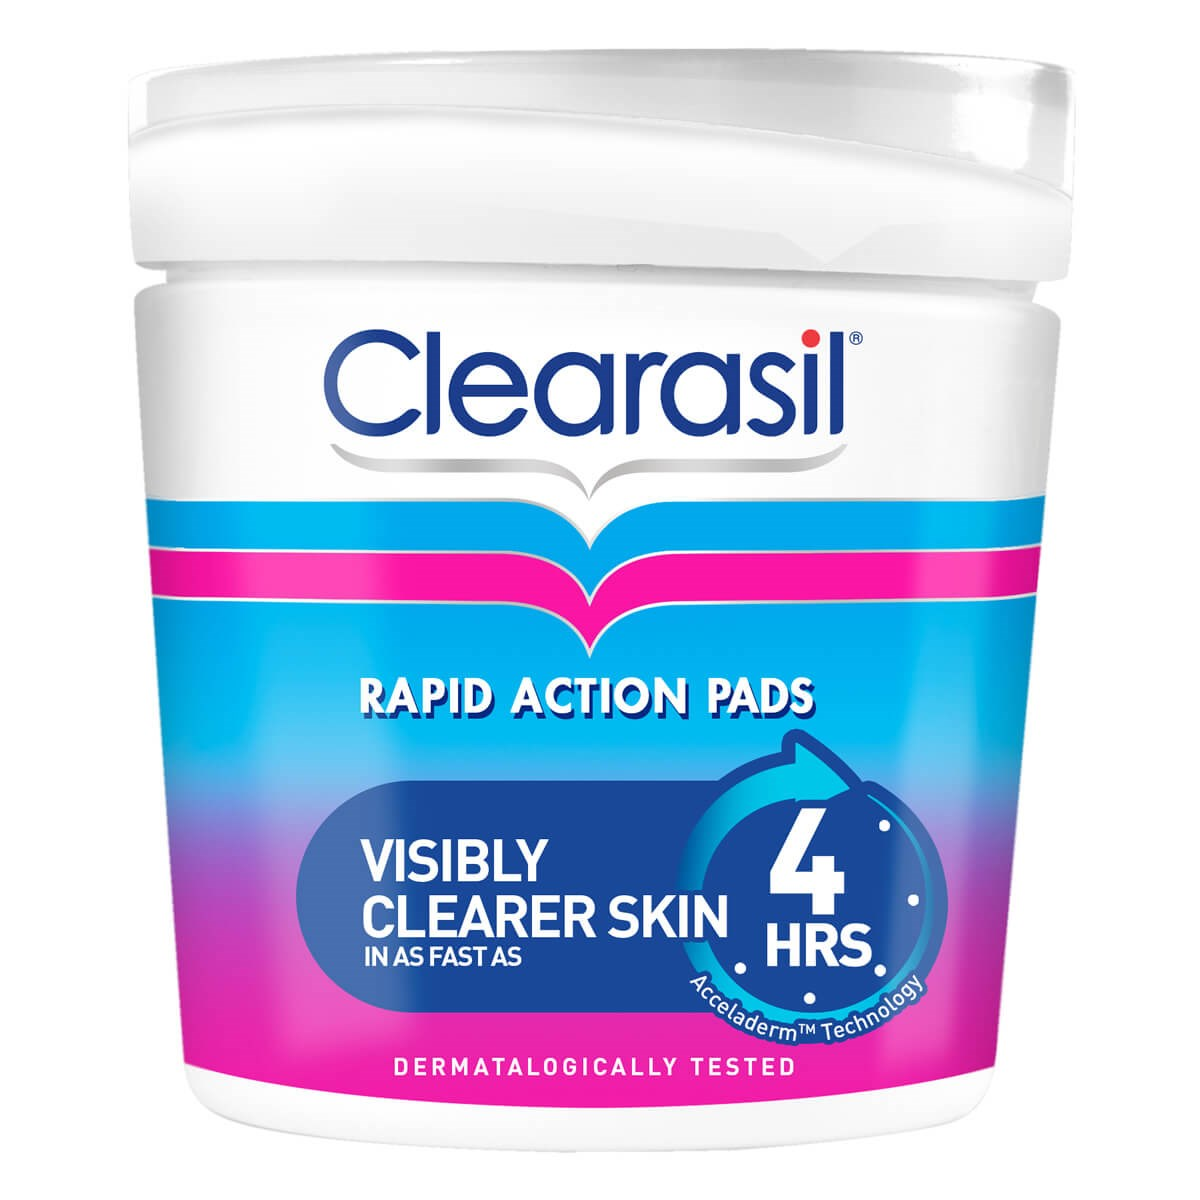 Clearasil Rapid Action Pads